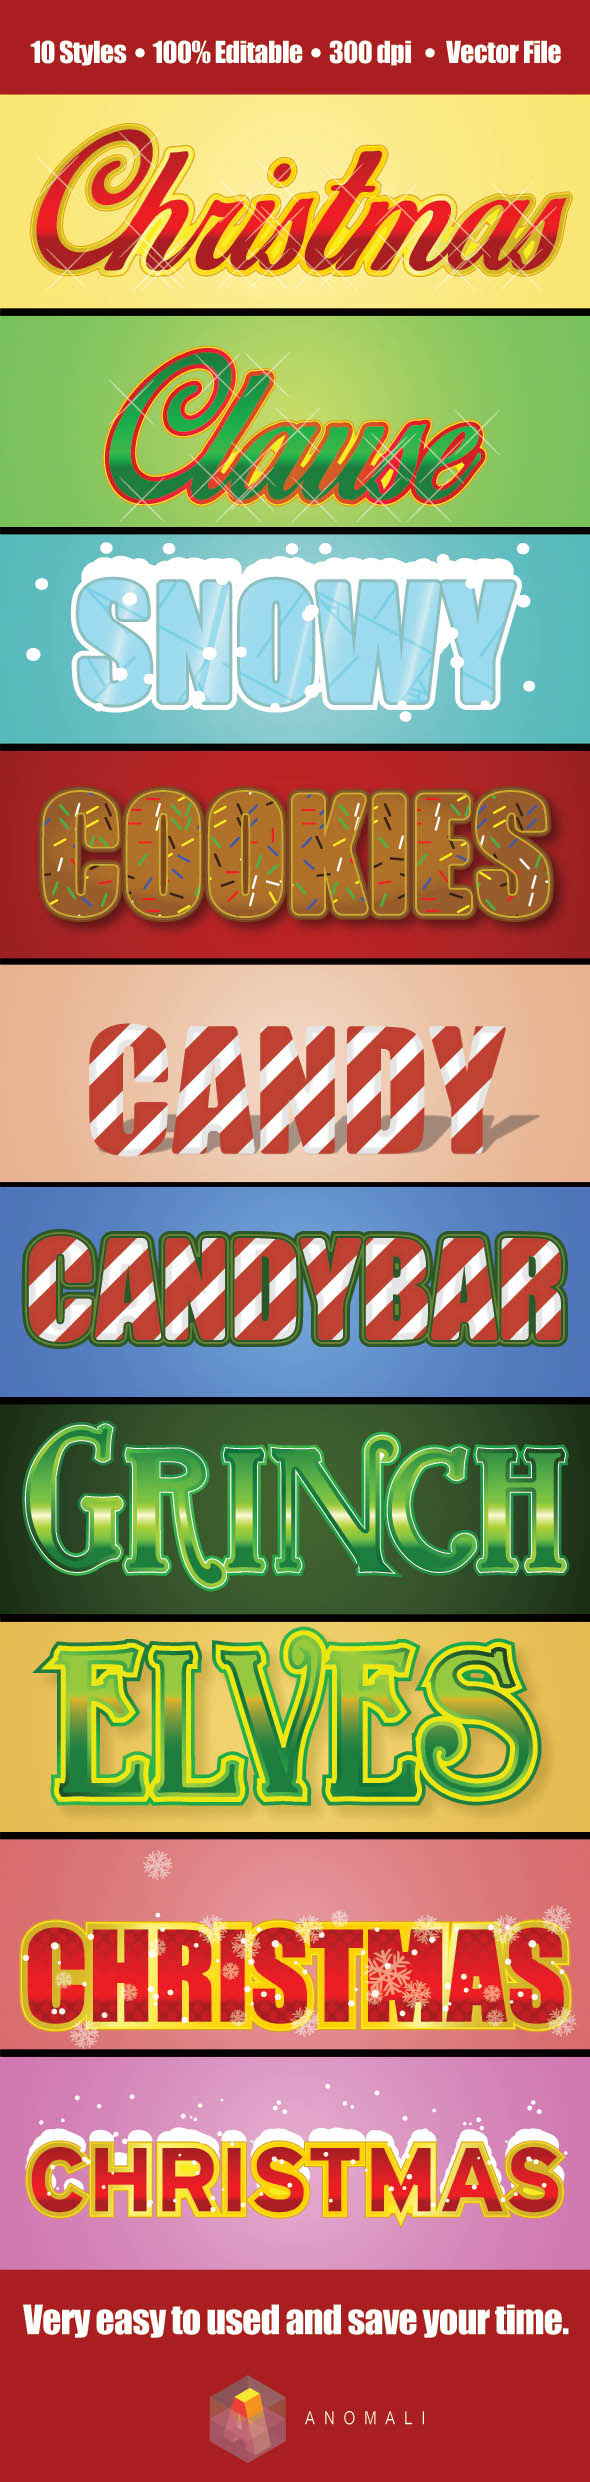 GraphicRiver Christmas Text Graphic Style Vol.01 9535221